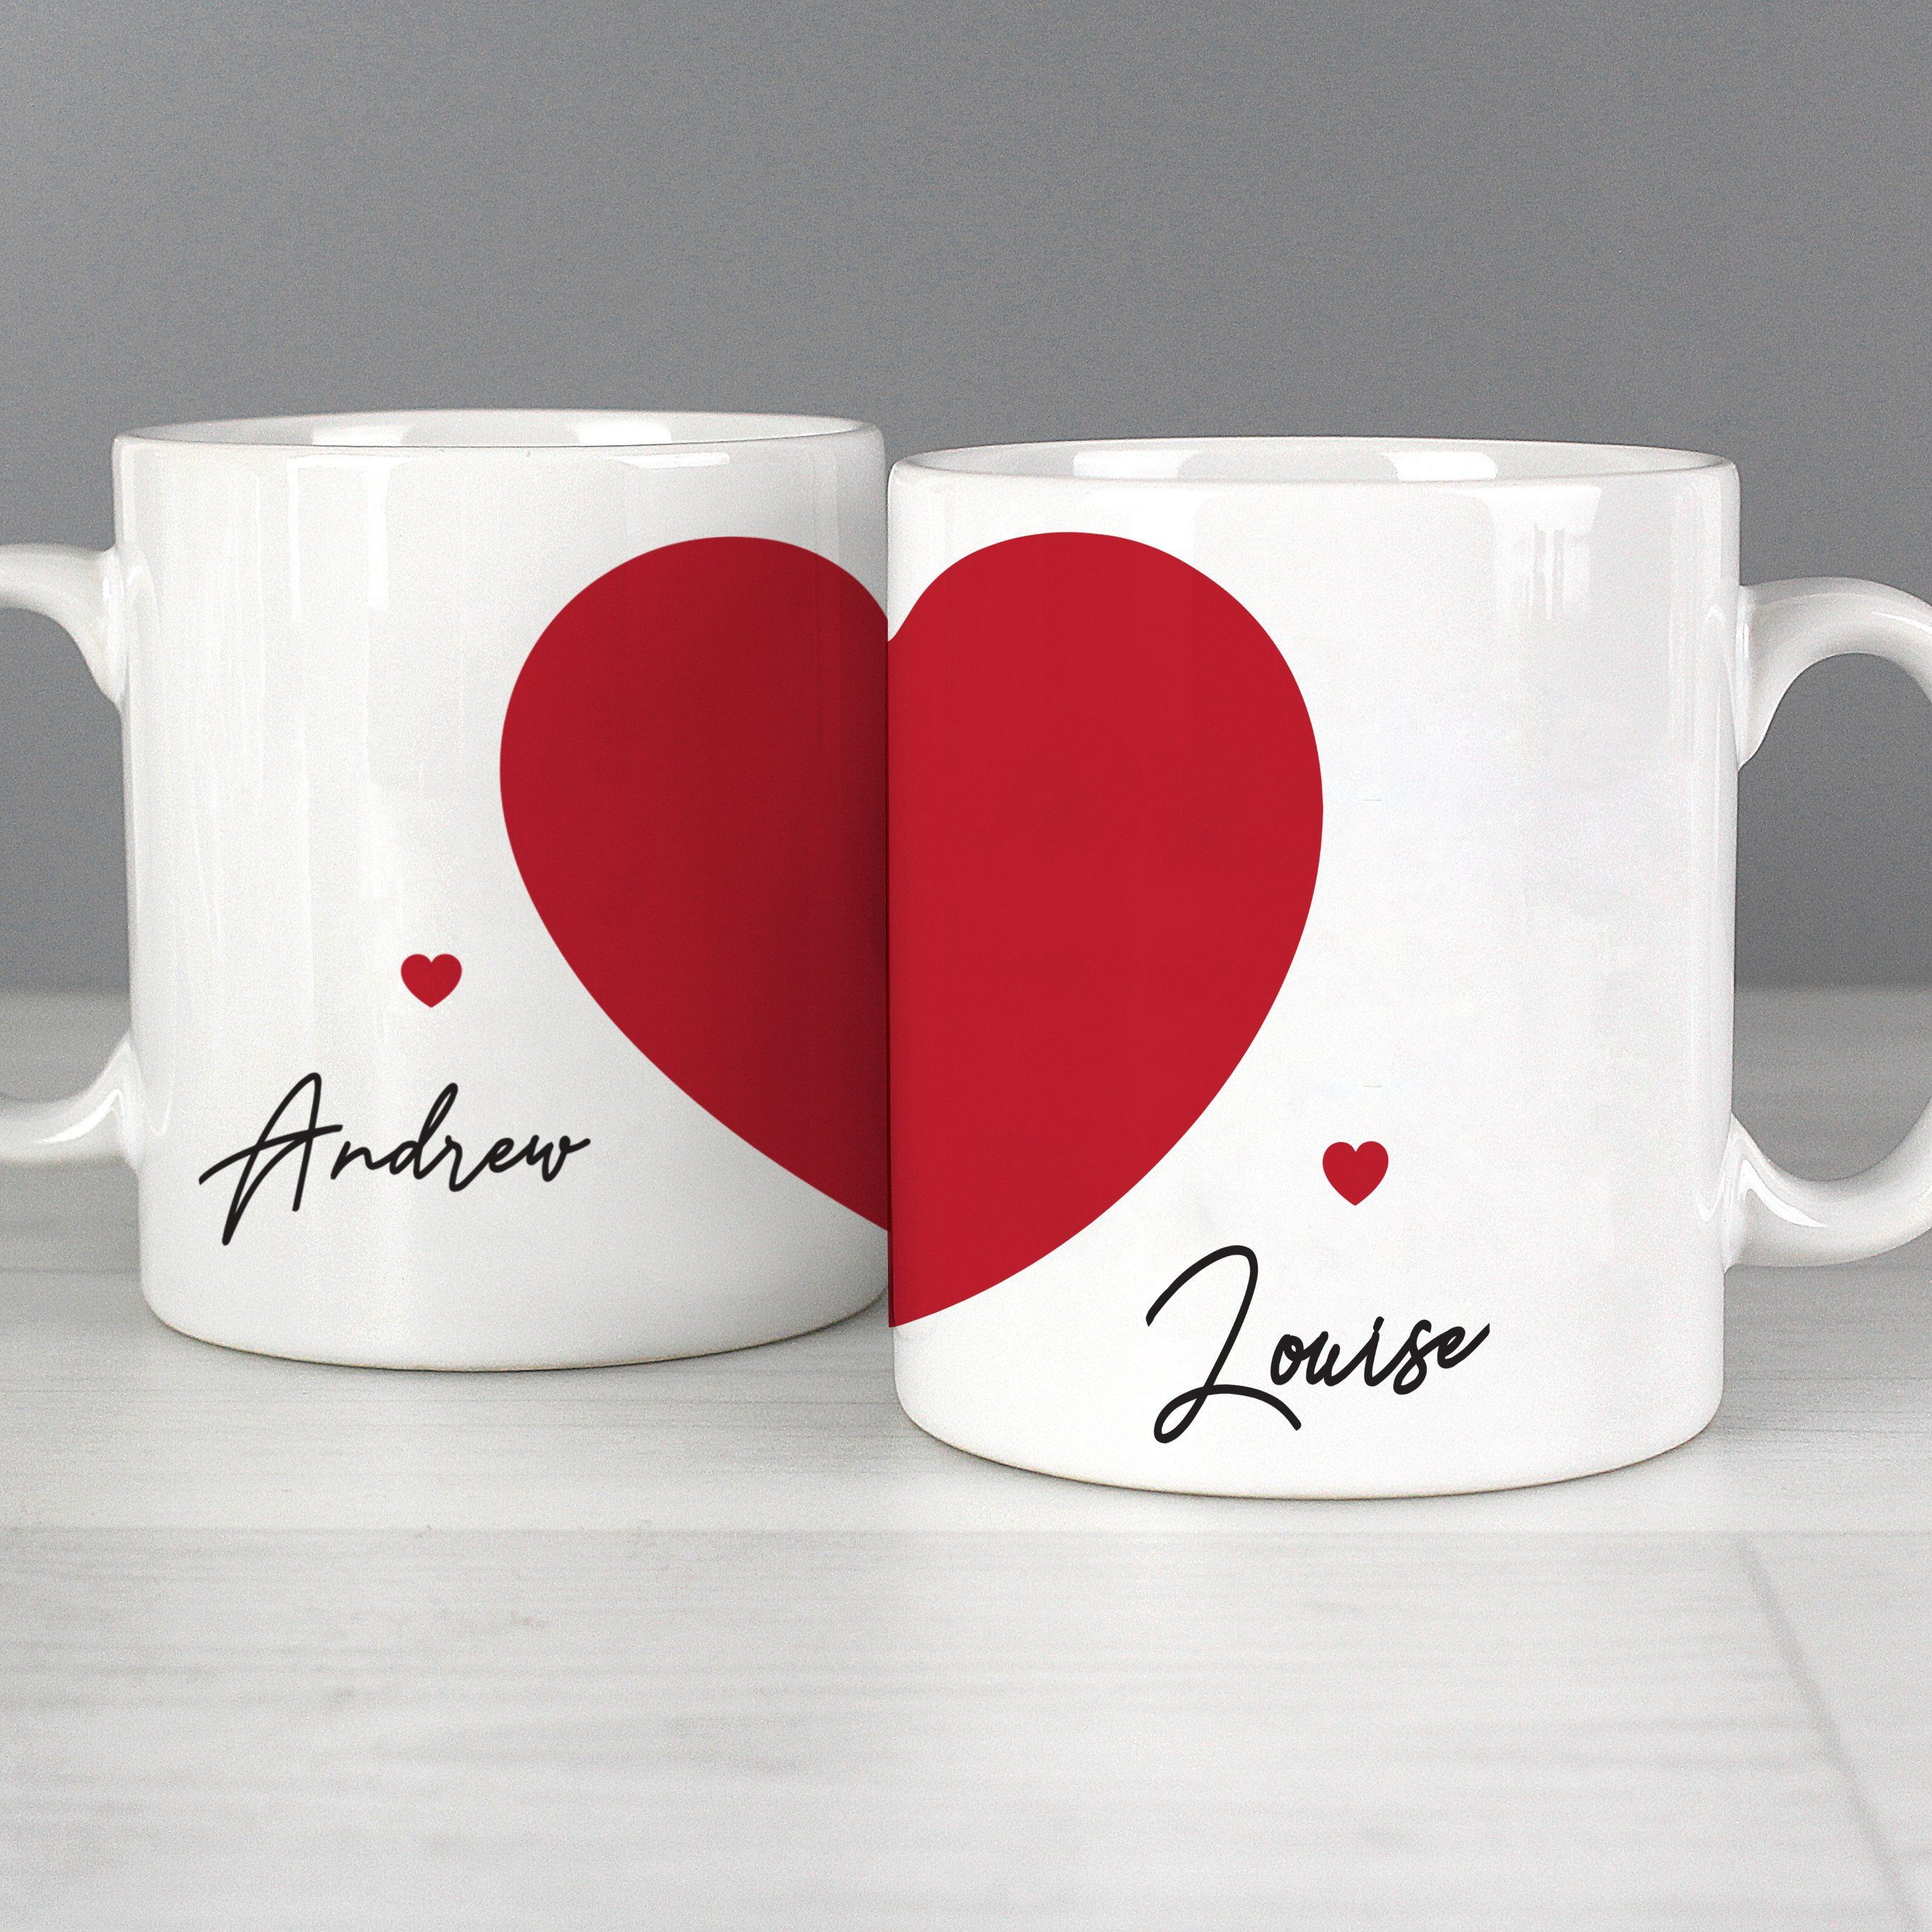 When two halves become one... This personalised Two Hearts Mug Set is a perfect way of feeling connected, even when apart! This mug set can be personalised with 2 names with up to 12 characters per name, with one name on each mug. The names will appear as entered. Please refrain from using all uppercase letters. Hand washing is recommended. Material is ceramic. Perfect for Wedding, Anniversary, Valentine's Day, Christmas.